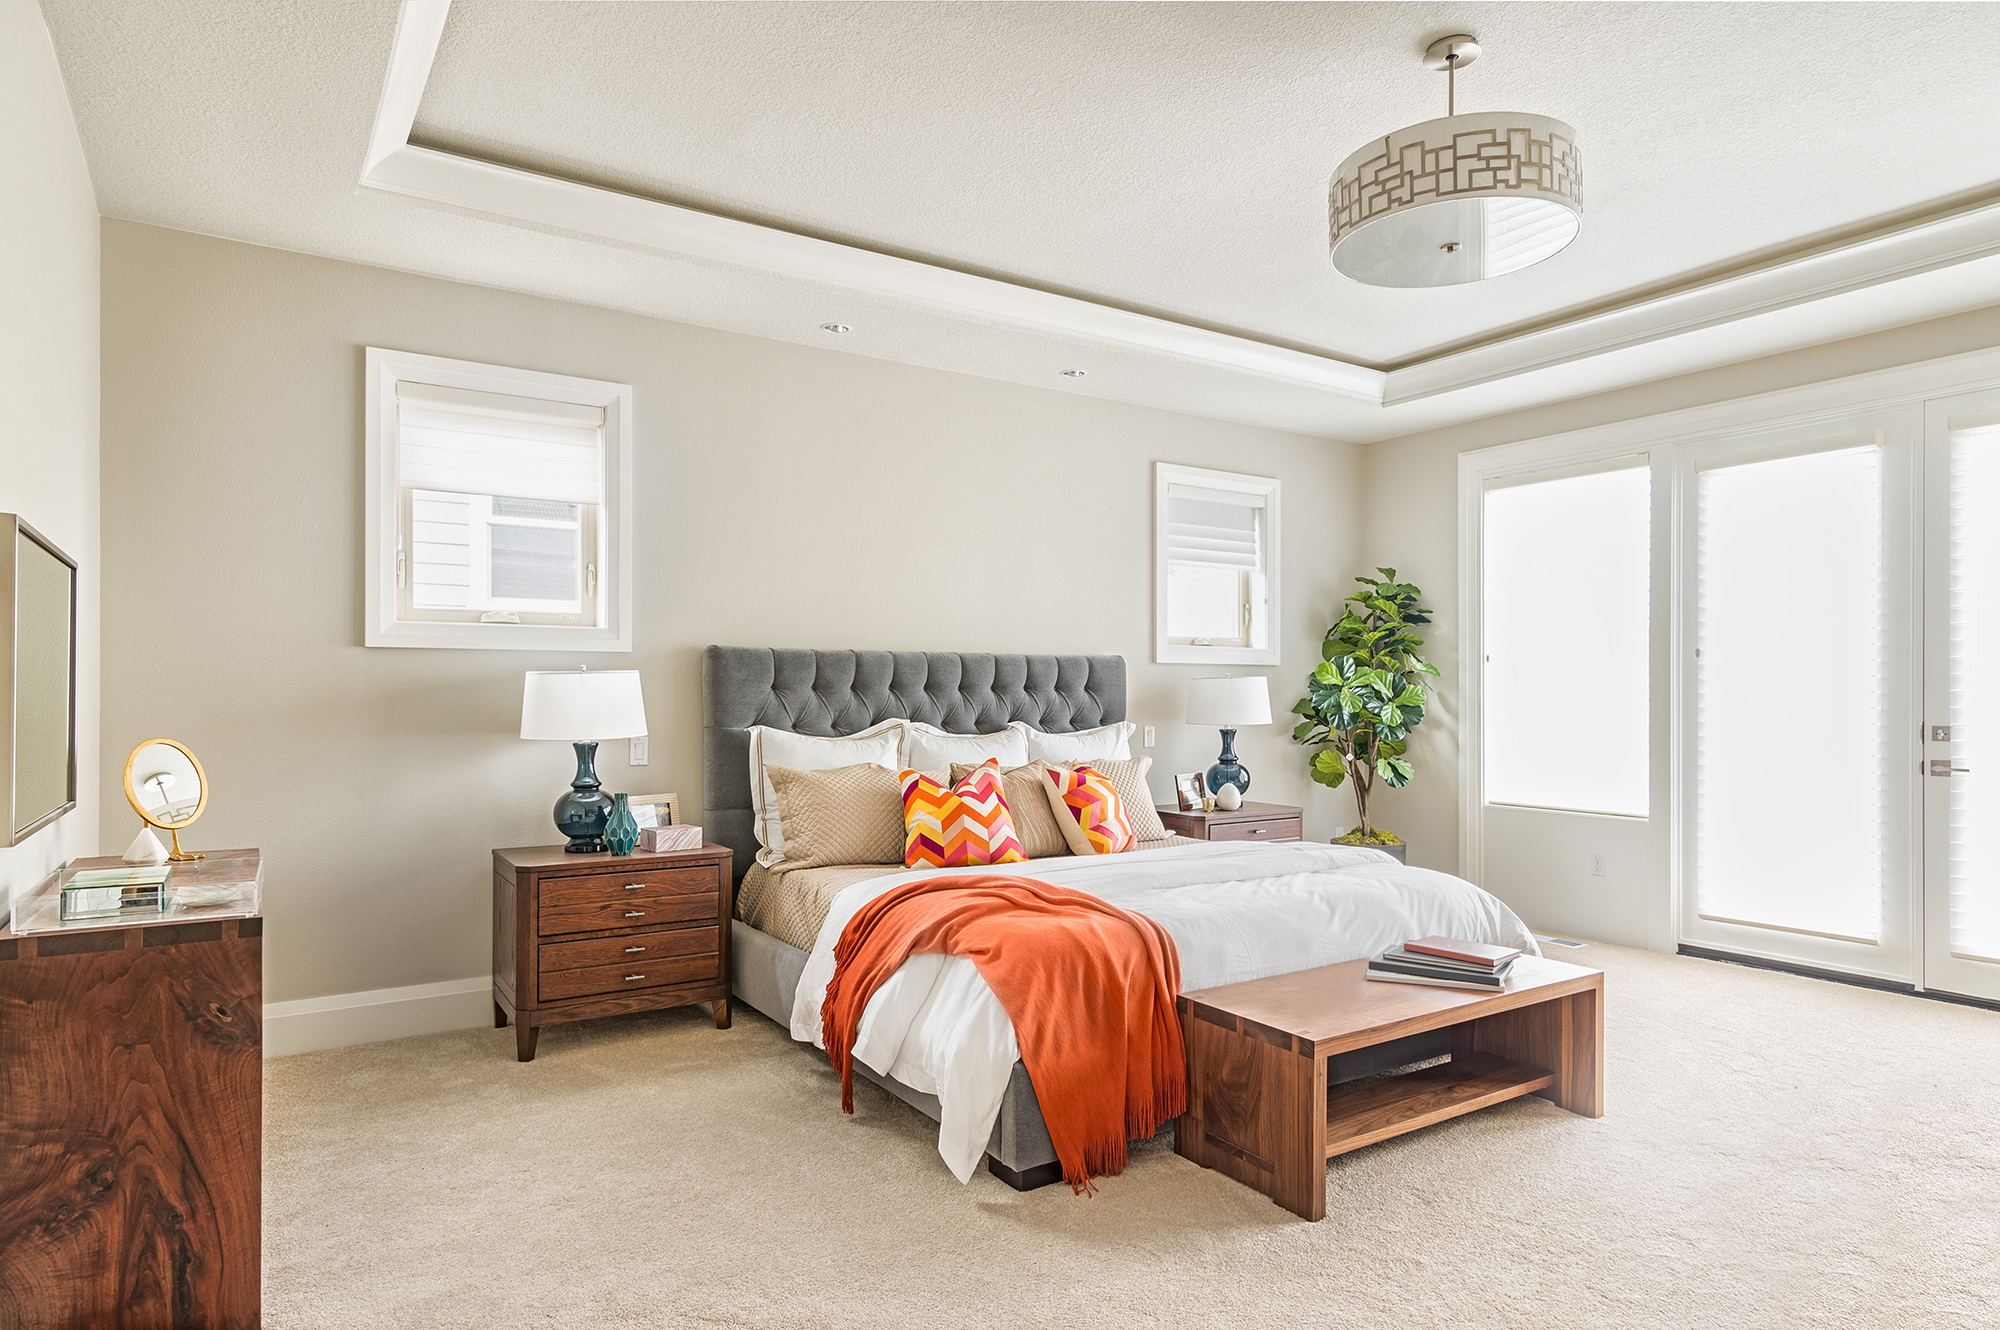 4 Staging Tips For An Hgtv Worthy Home